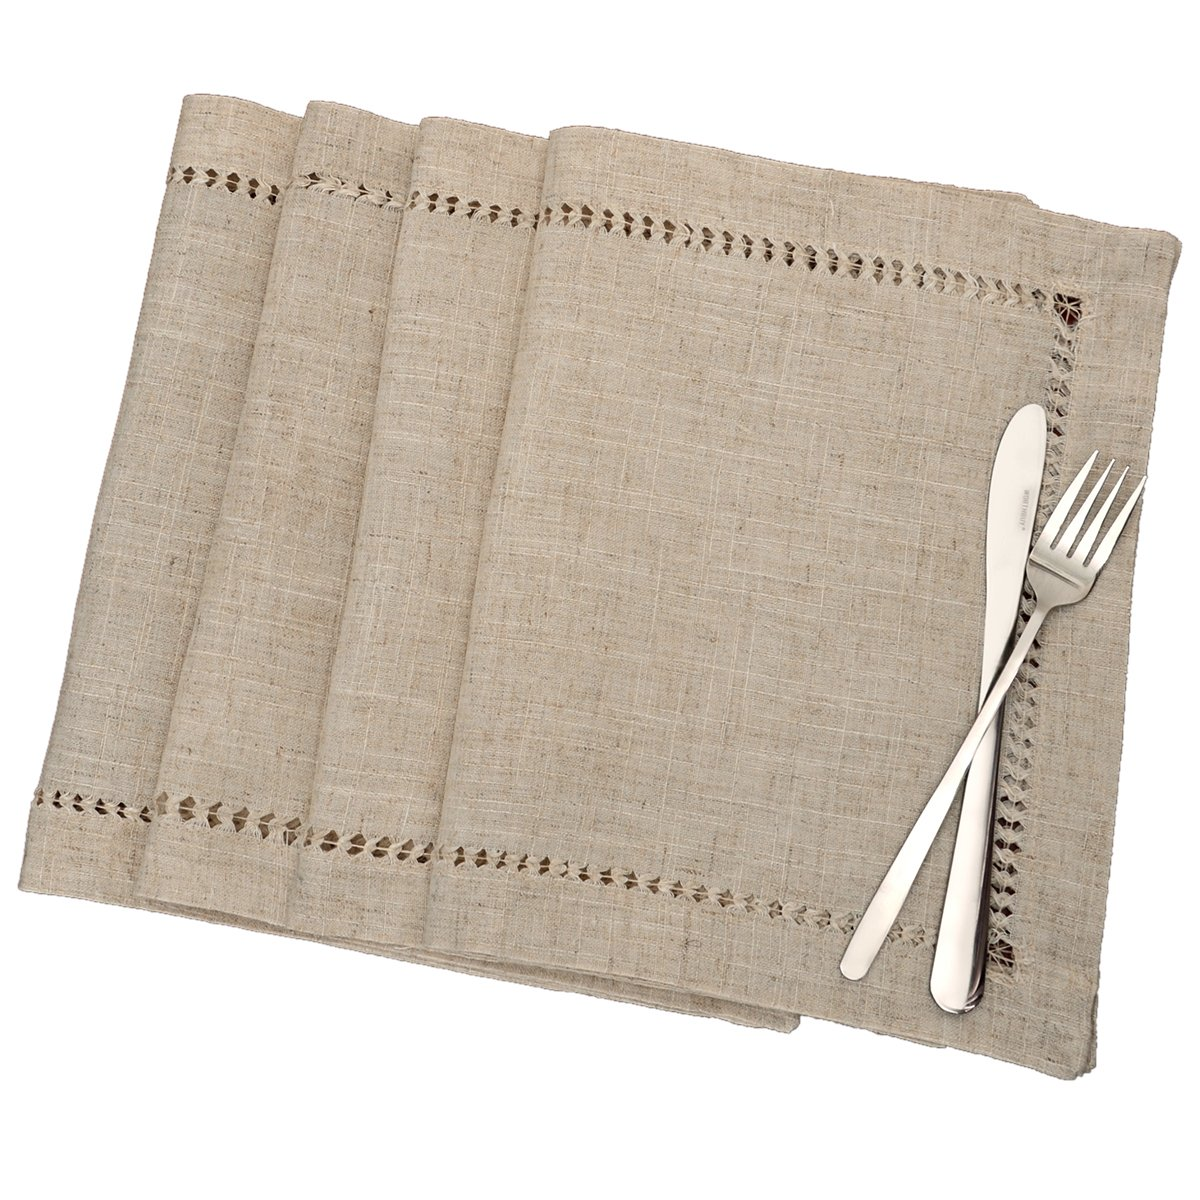 Handmade Hemstitched Natural Linen Placemats Set of 4 - ChristmasTablescapeDecor.com